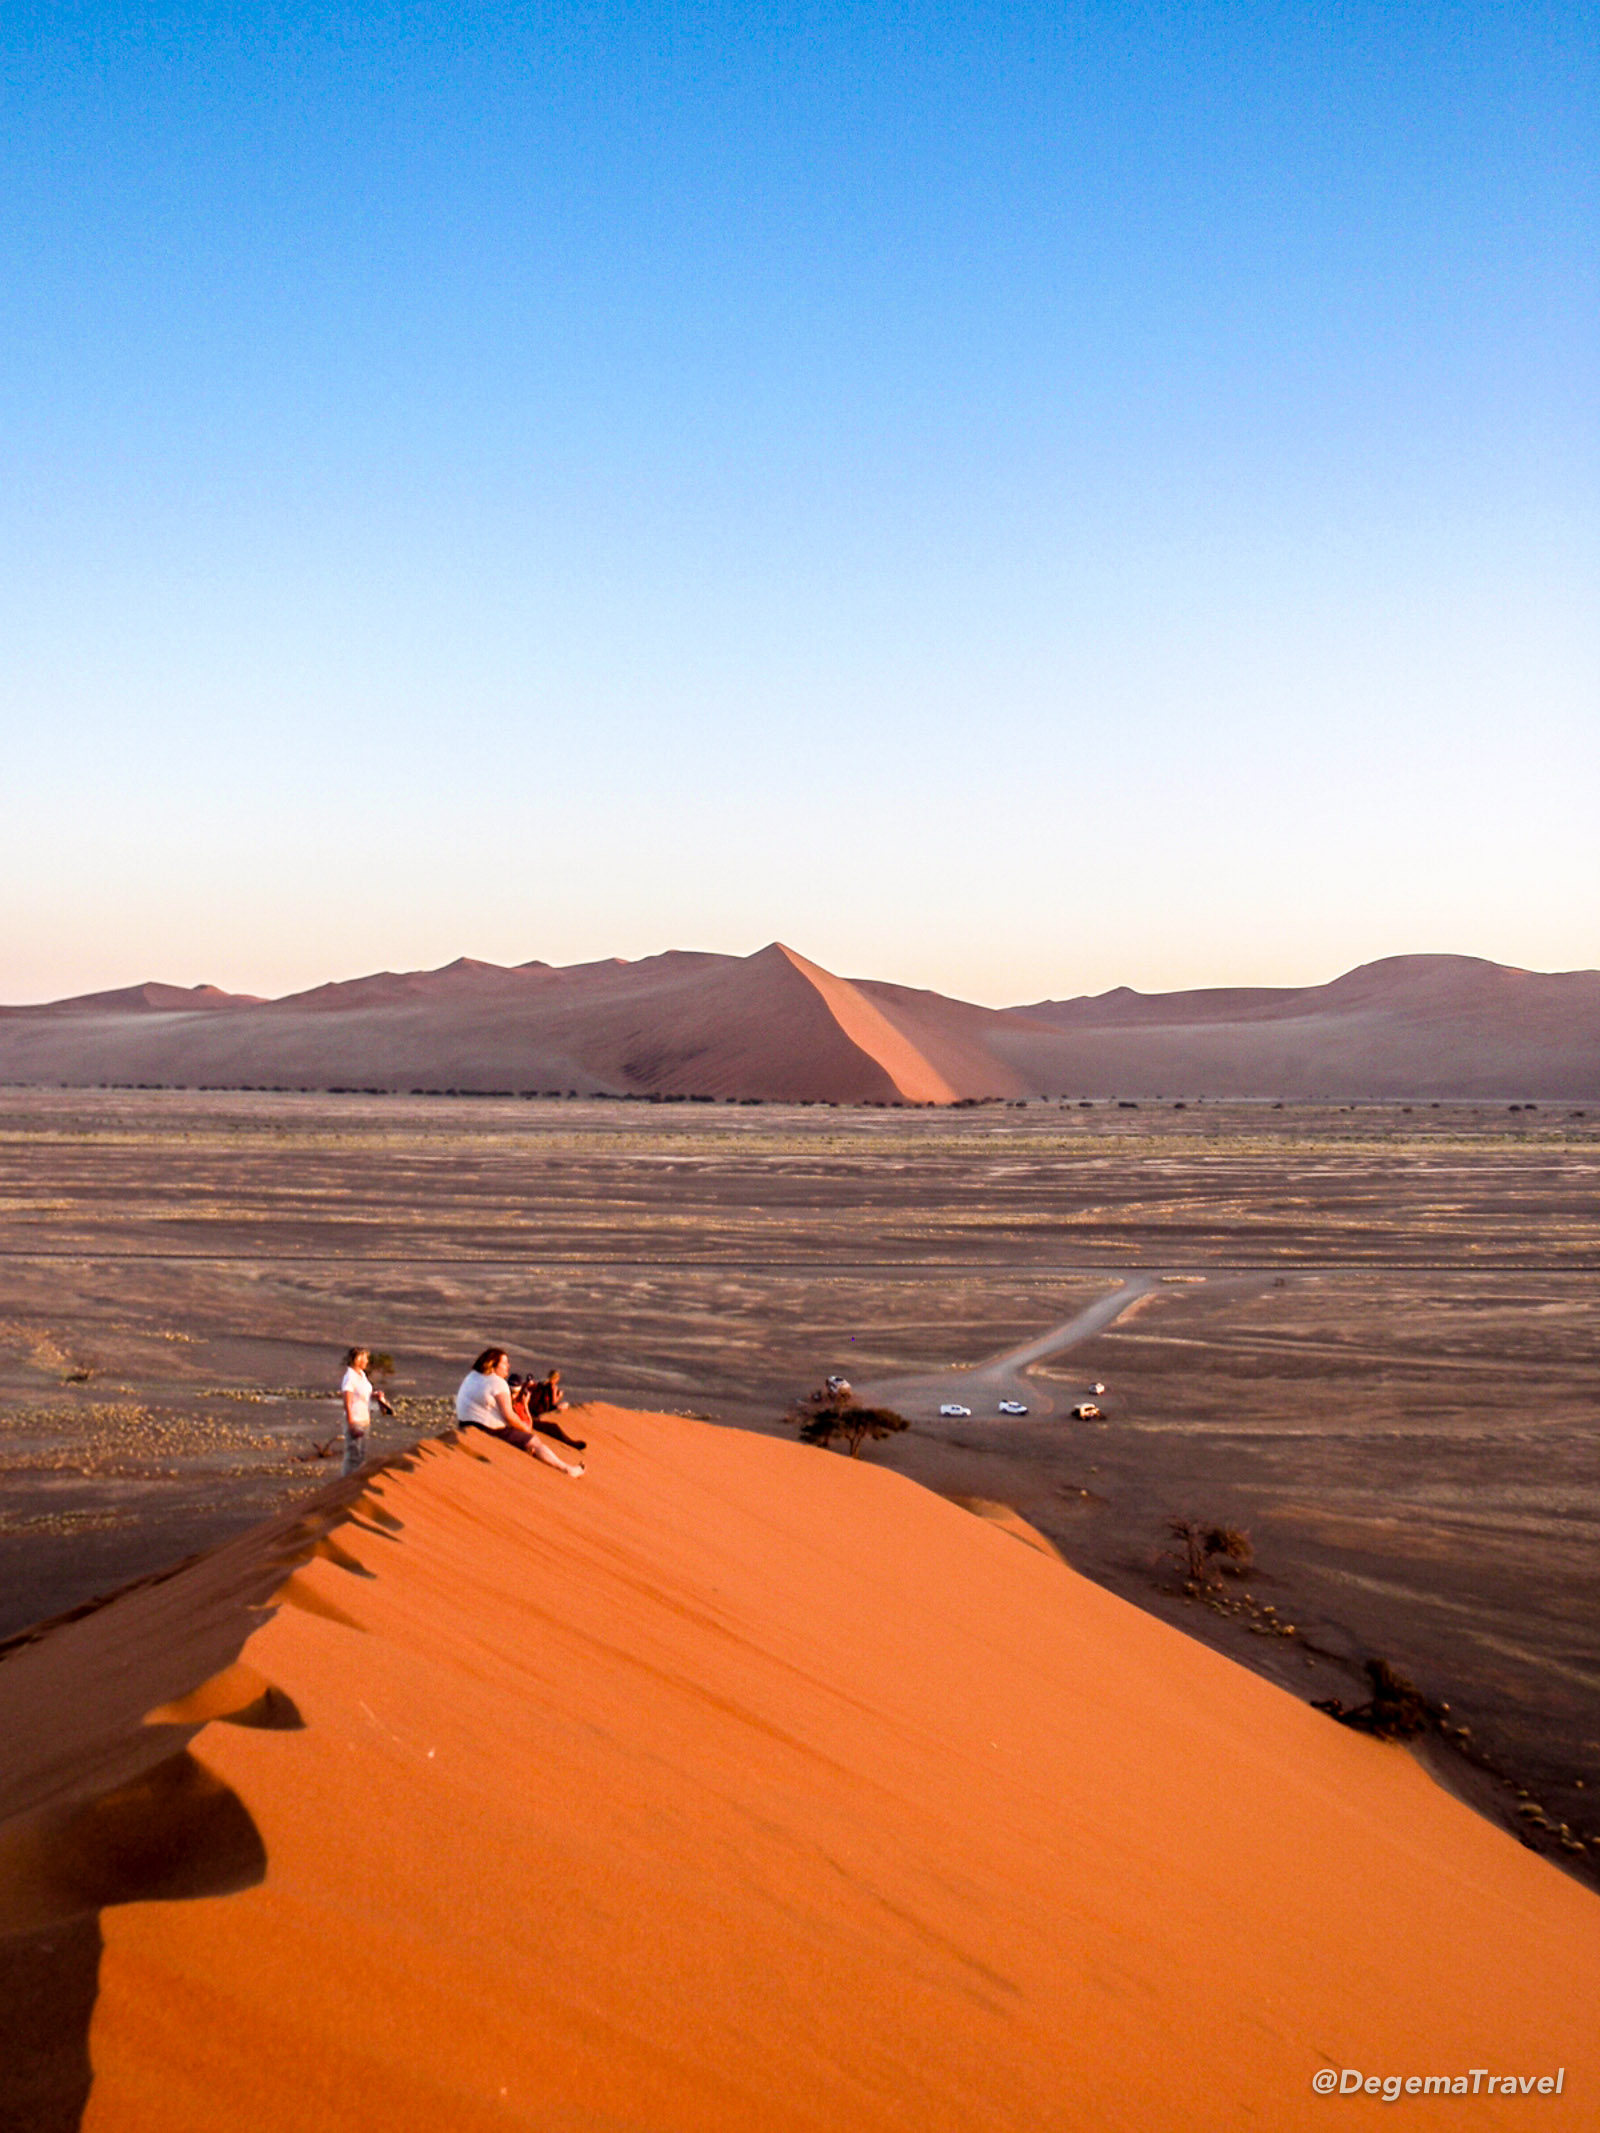 The view from Dune 45 in Namibia